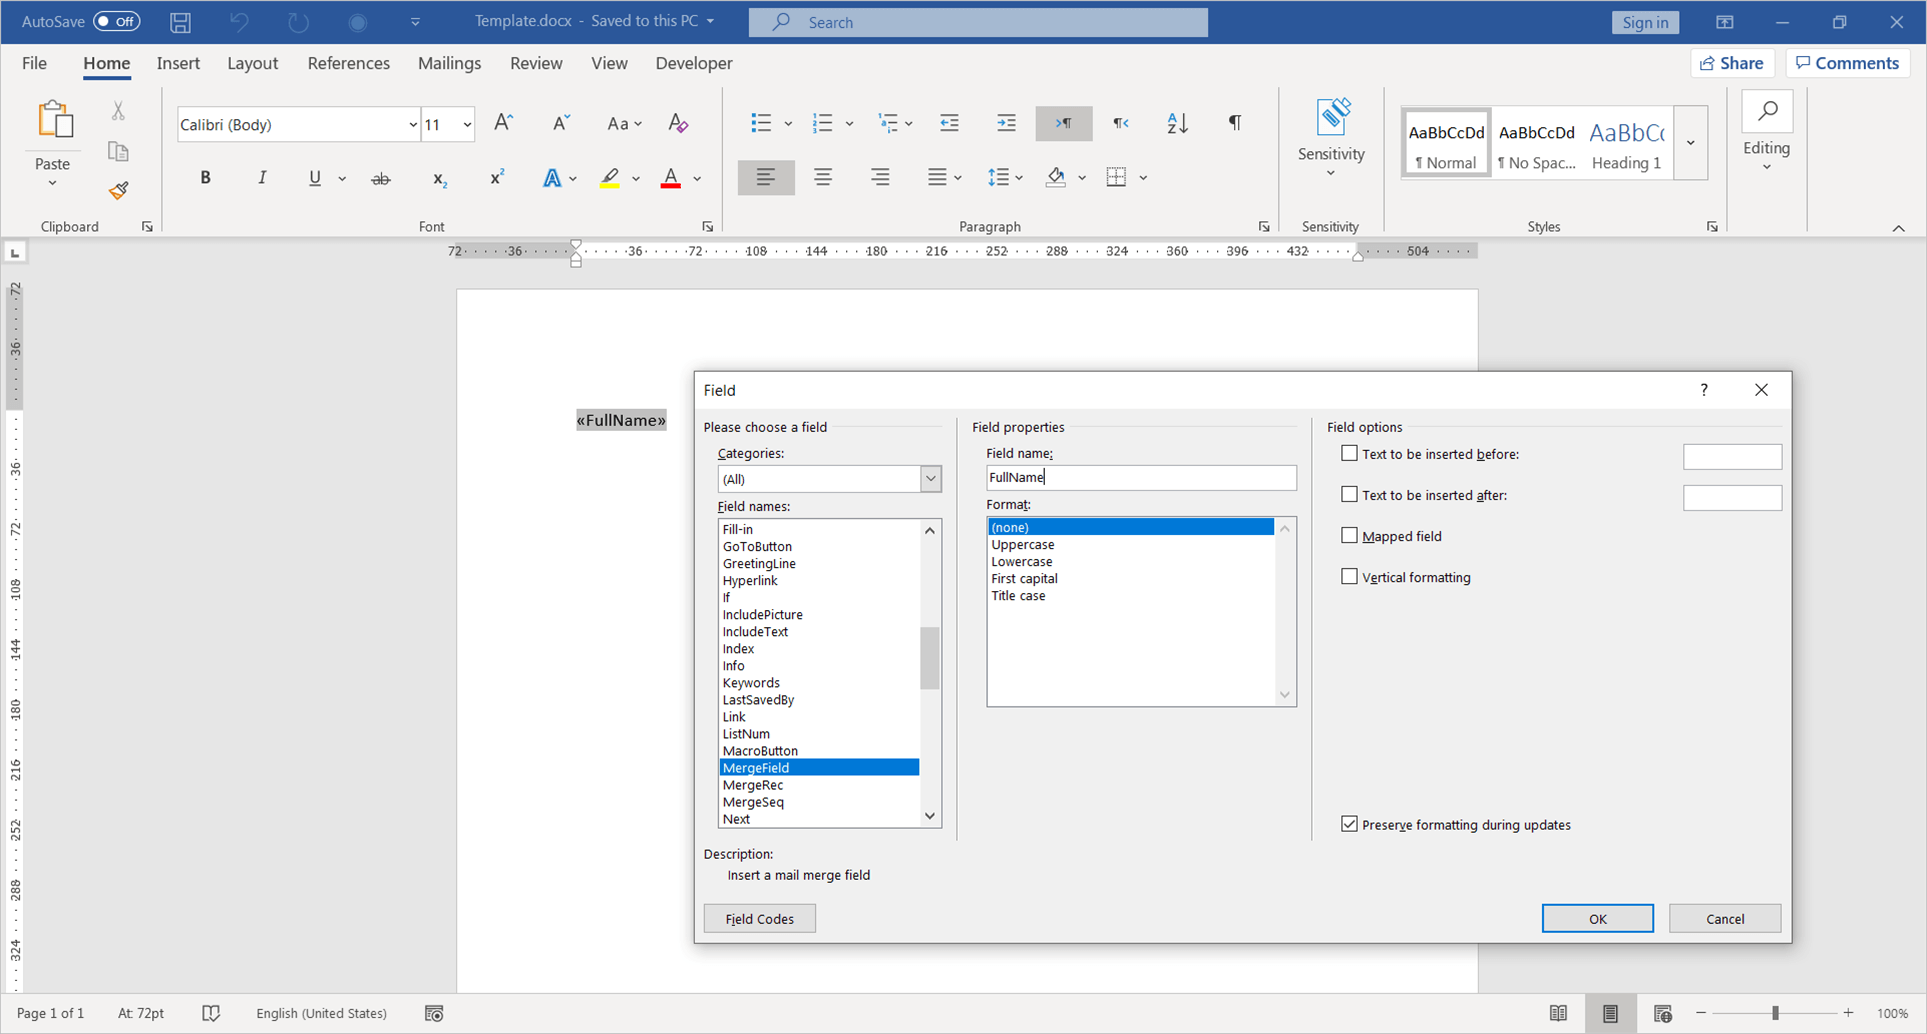 Creating a Template Word Document Using Microsoft Word Editor